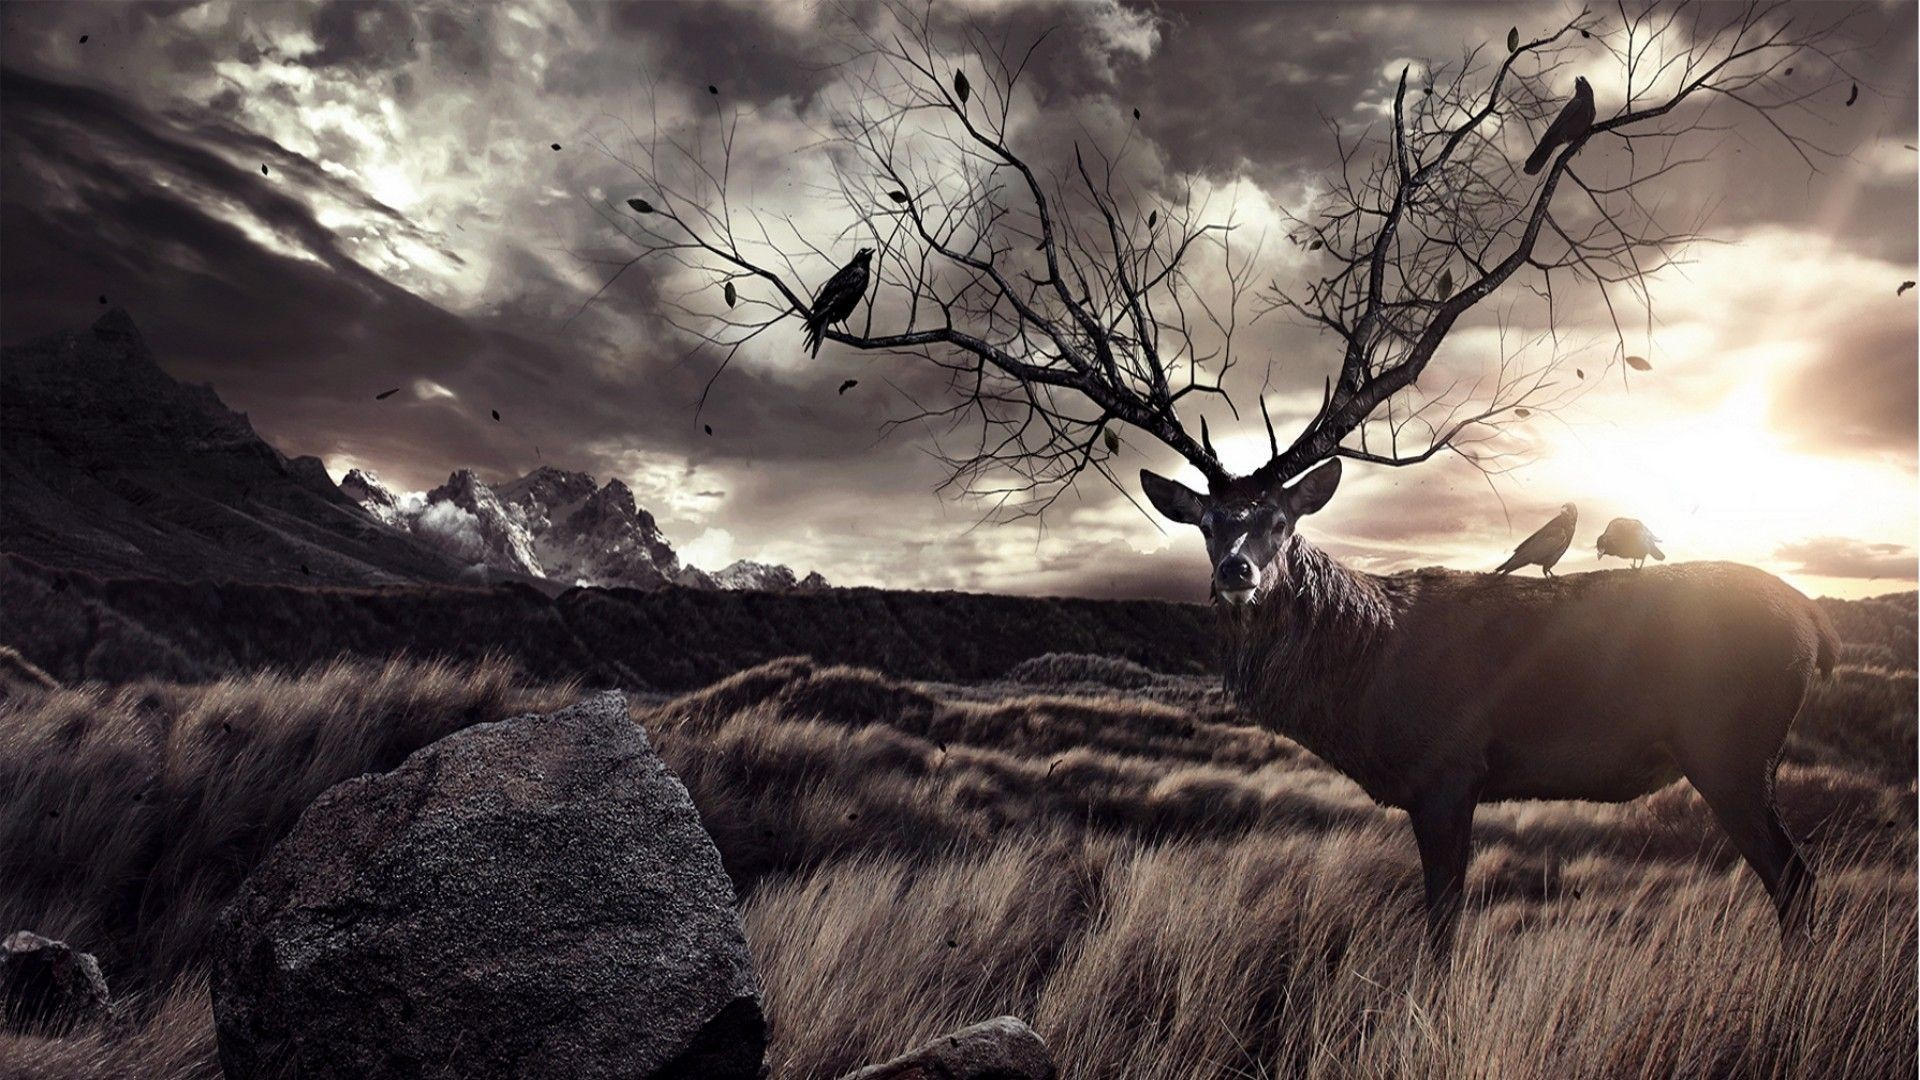 Res: 1920x1080, Deer Hunting Wallpapers HD Page 3 Of Wallpaper Wiki In